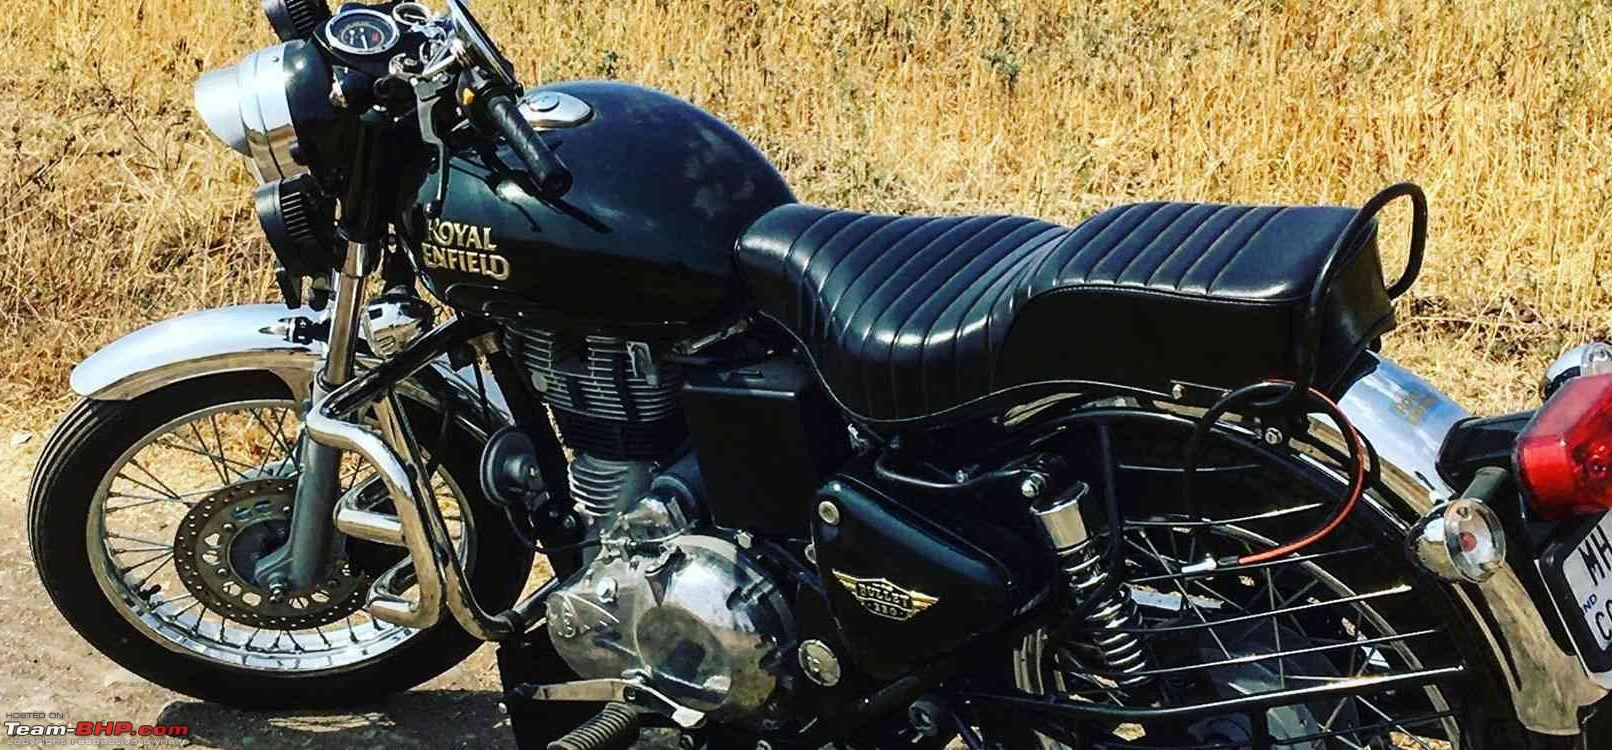 Royal Enfield Bullet 350 350 Es Launched At Rs 1 12 Lakh Team Bhp